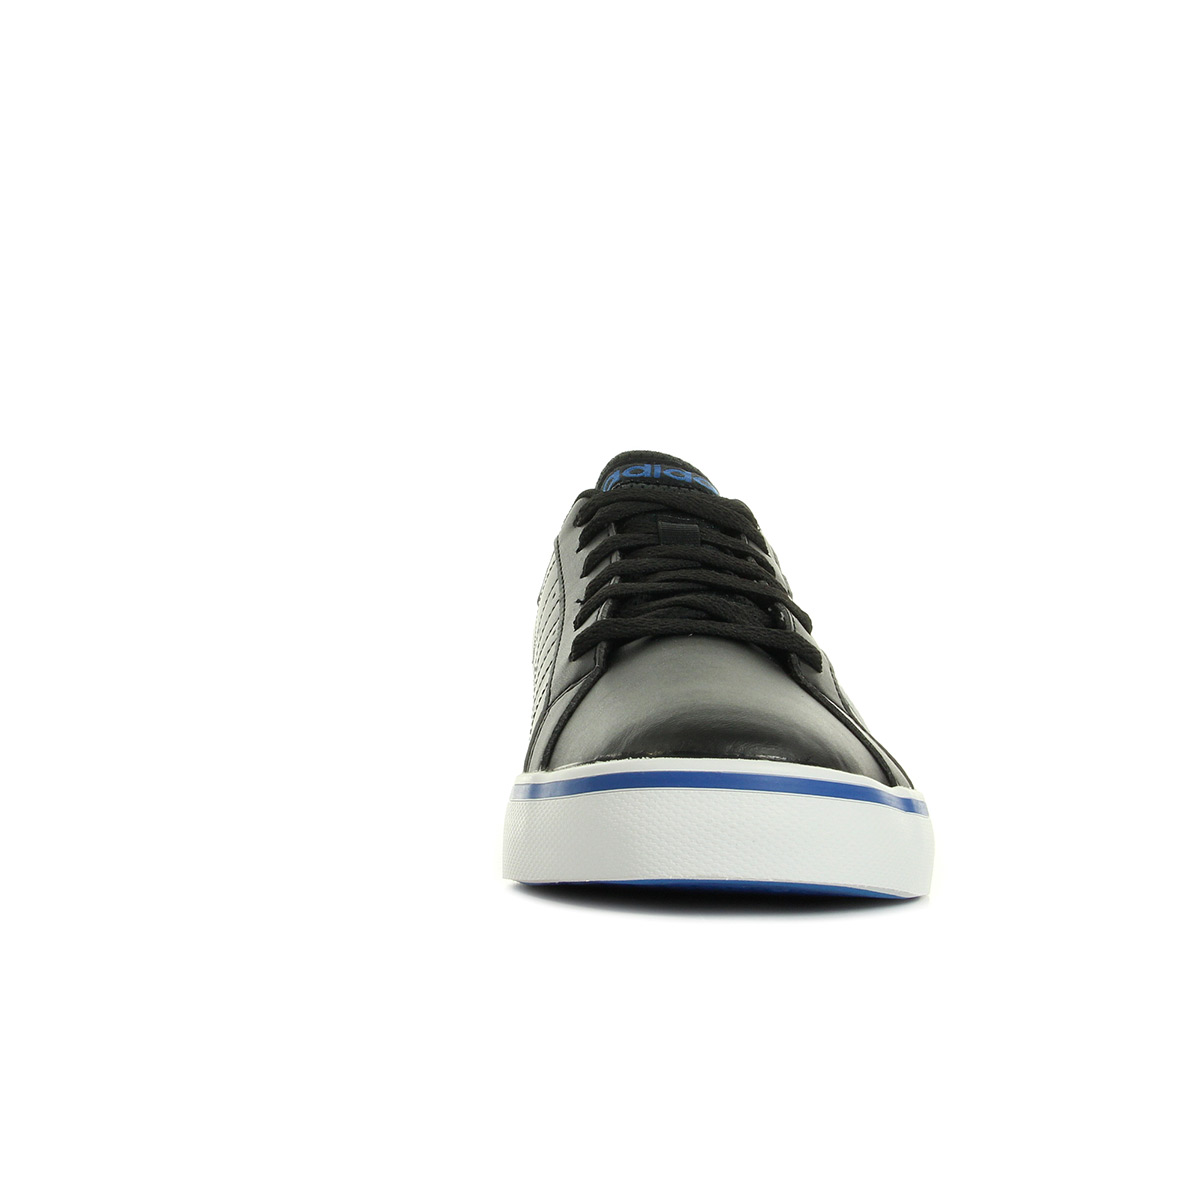 Pace F98355Baskets Mode Neo Vs Adidas Homme gYf7y6vb